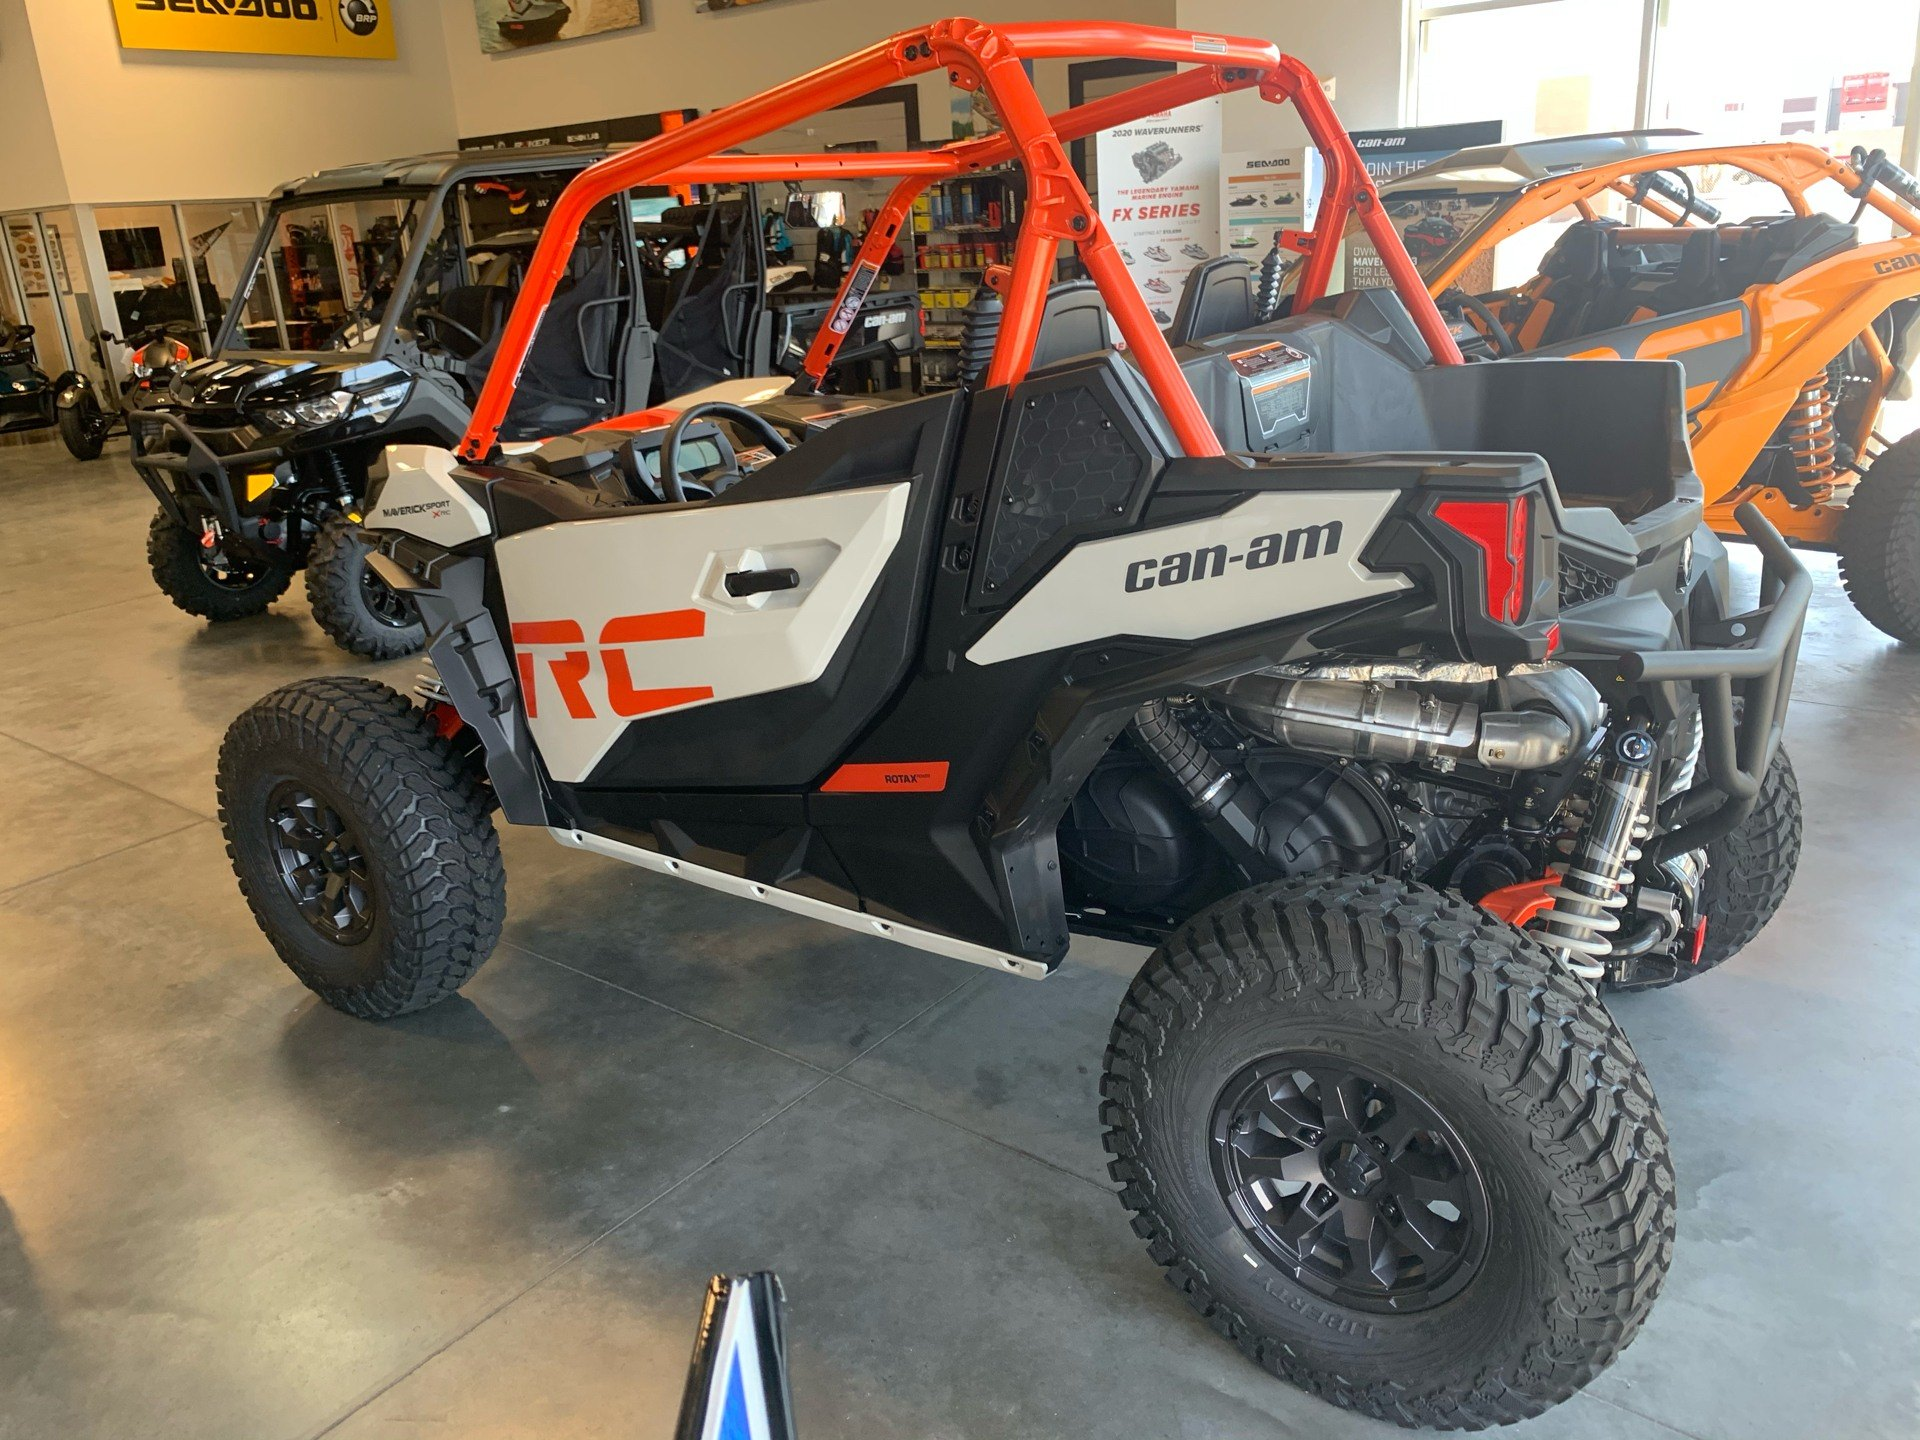 2021 Can-Am Maverick Sport X RC 1000R in Las Vegas, Nevada - Photo 4